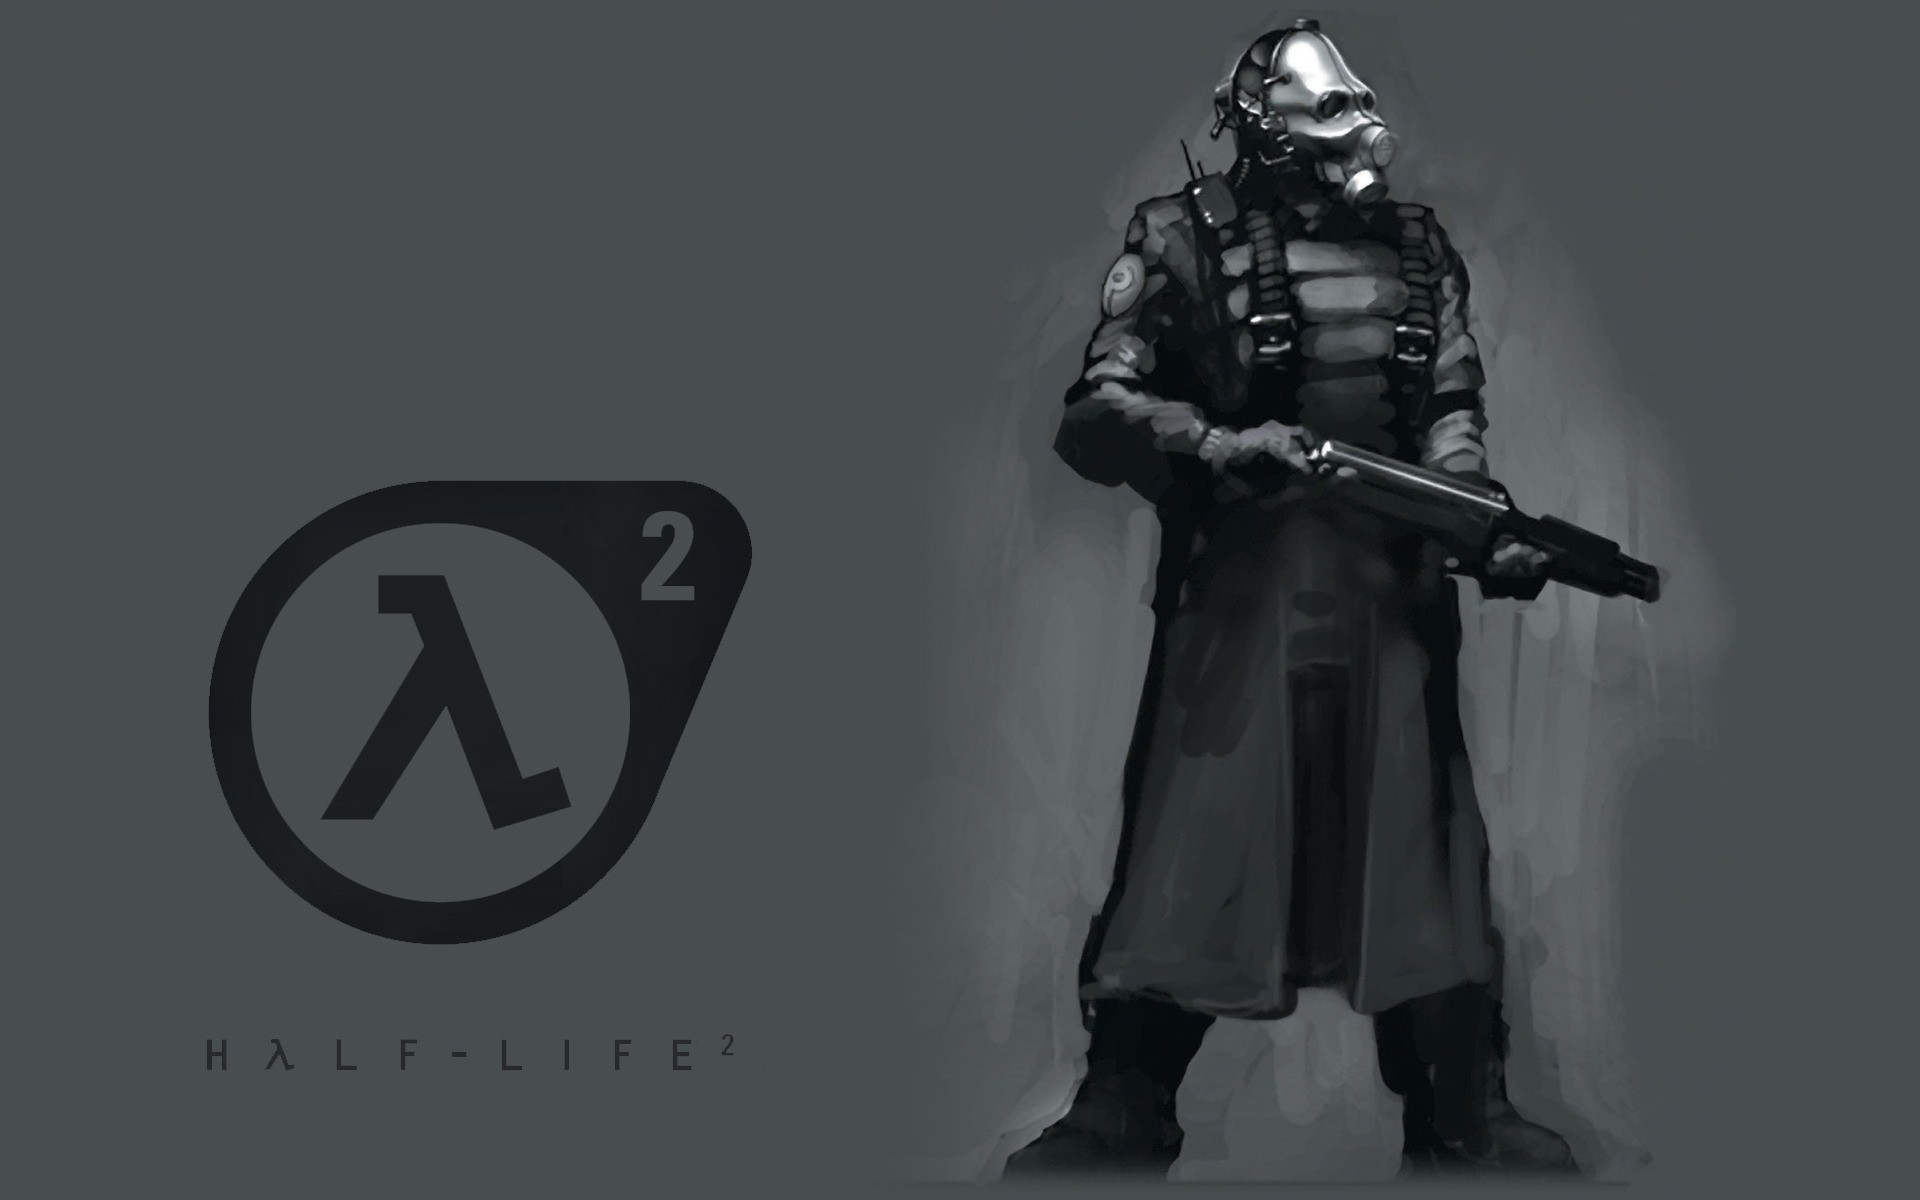 Half Life 2 Combine Wallpaper: Download Half Life 2 Combine Wallpaper Gallery